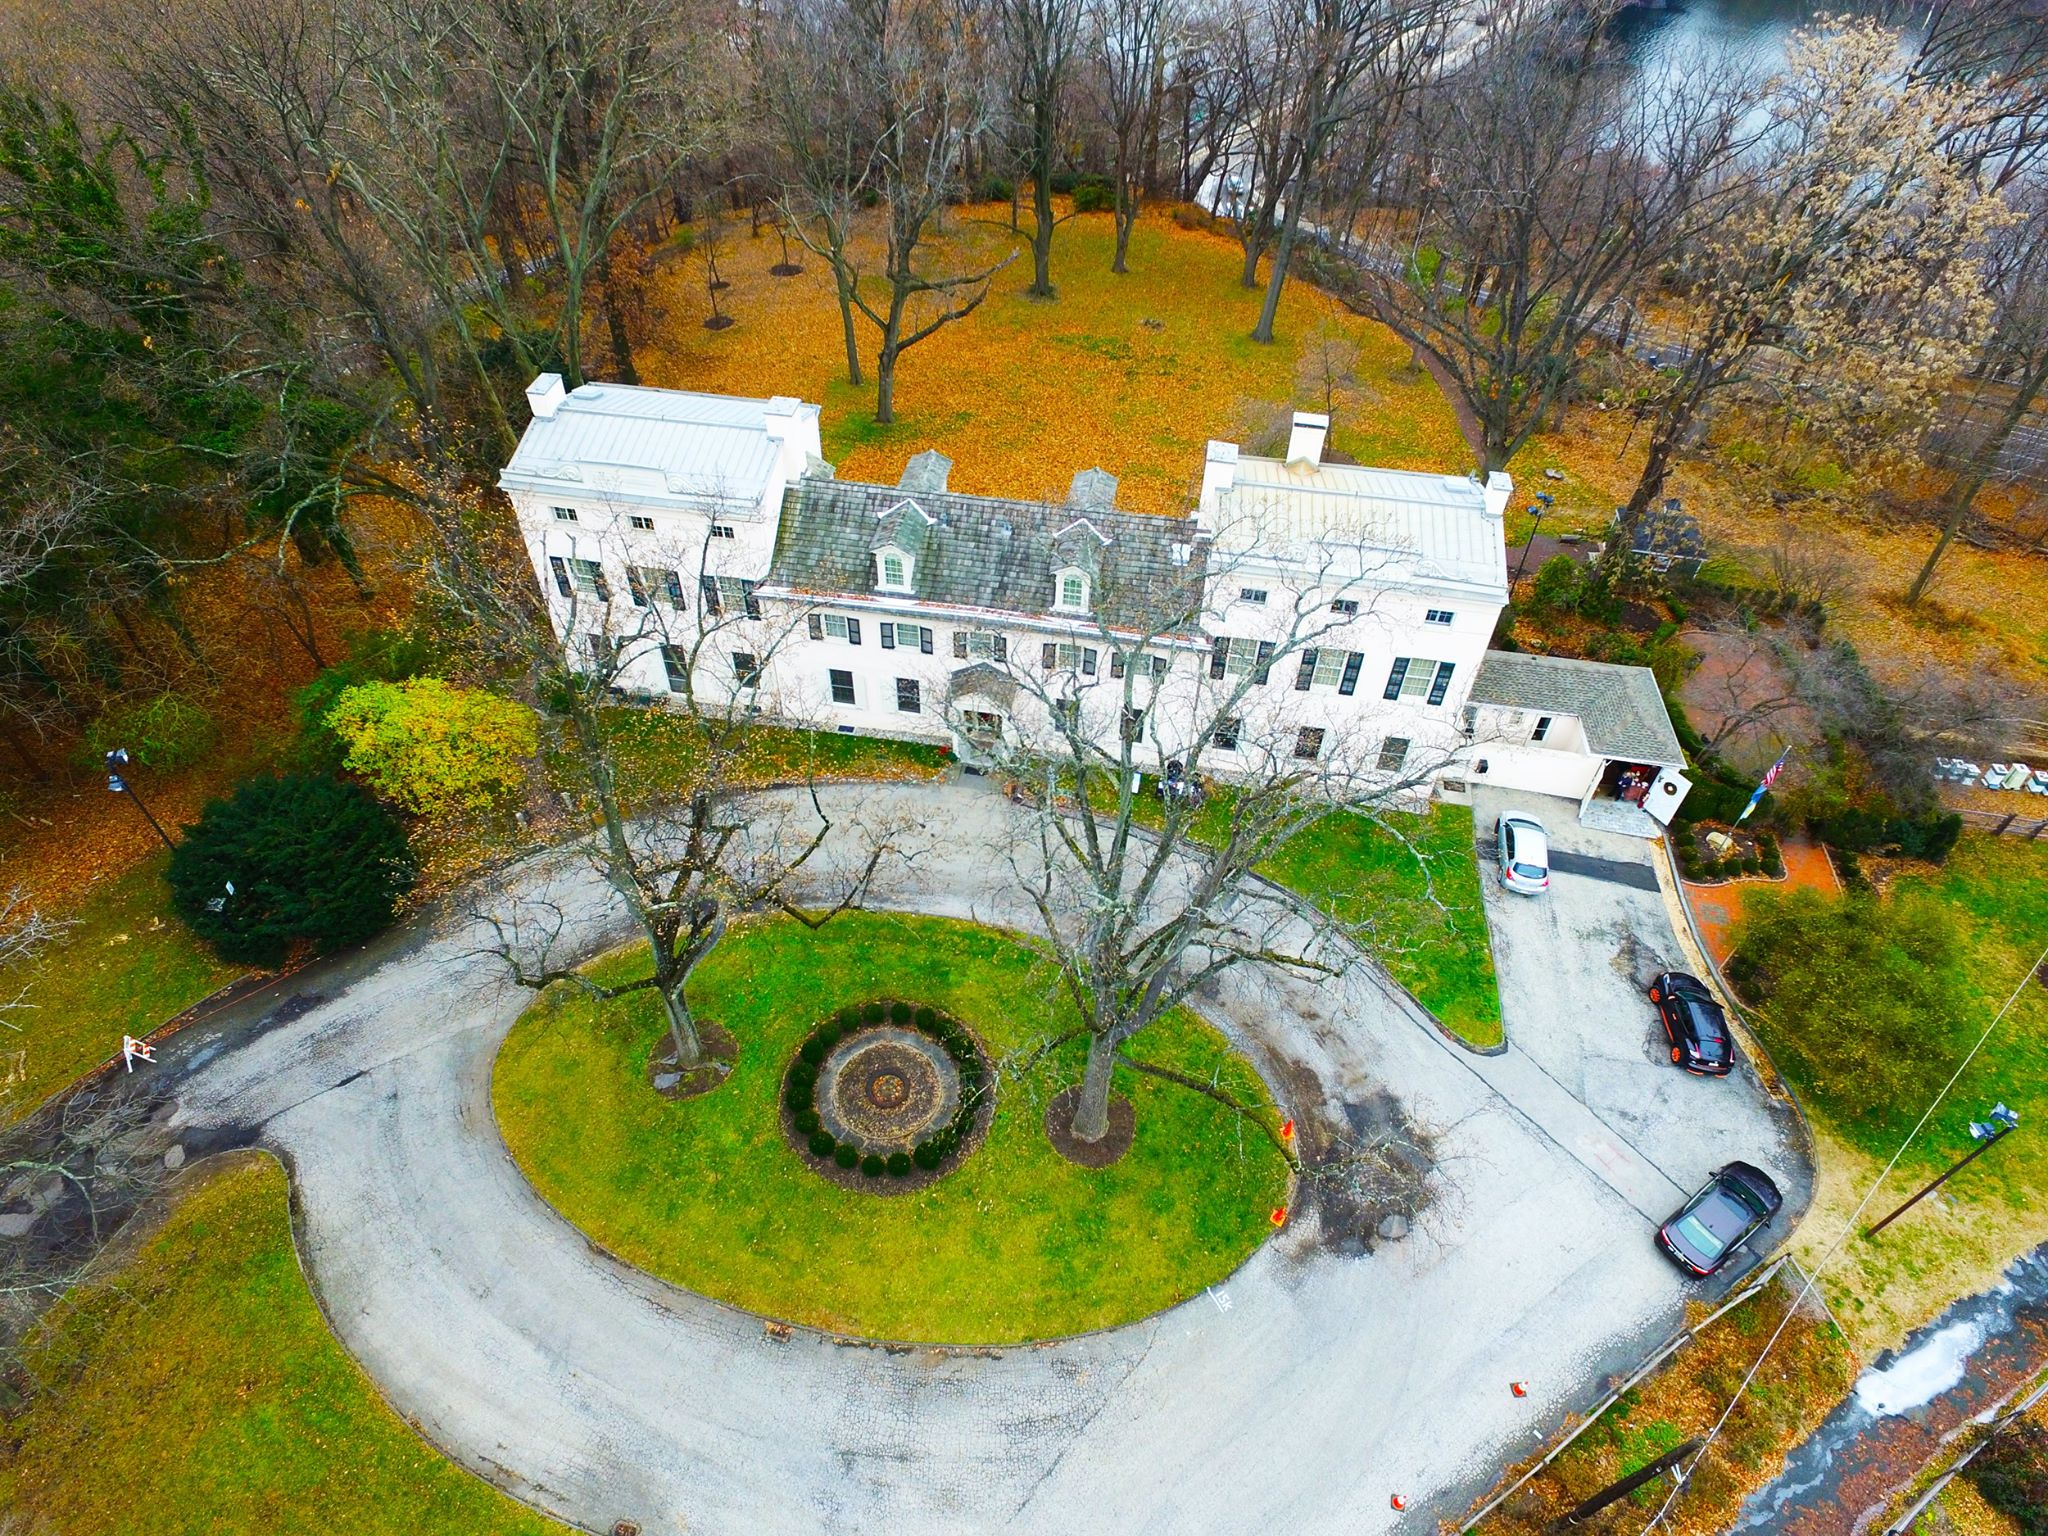 This overhead shot of the mansion reveals its size as well as the bucolic grounds that surround it.